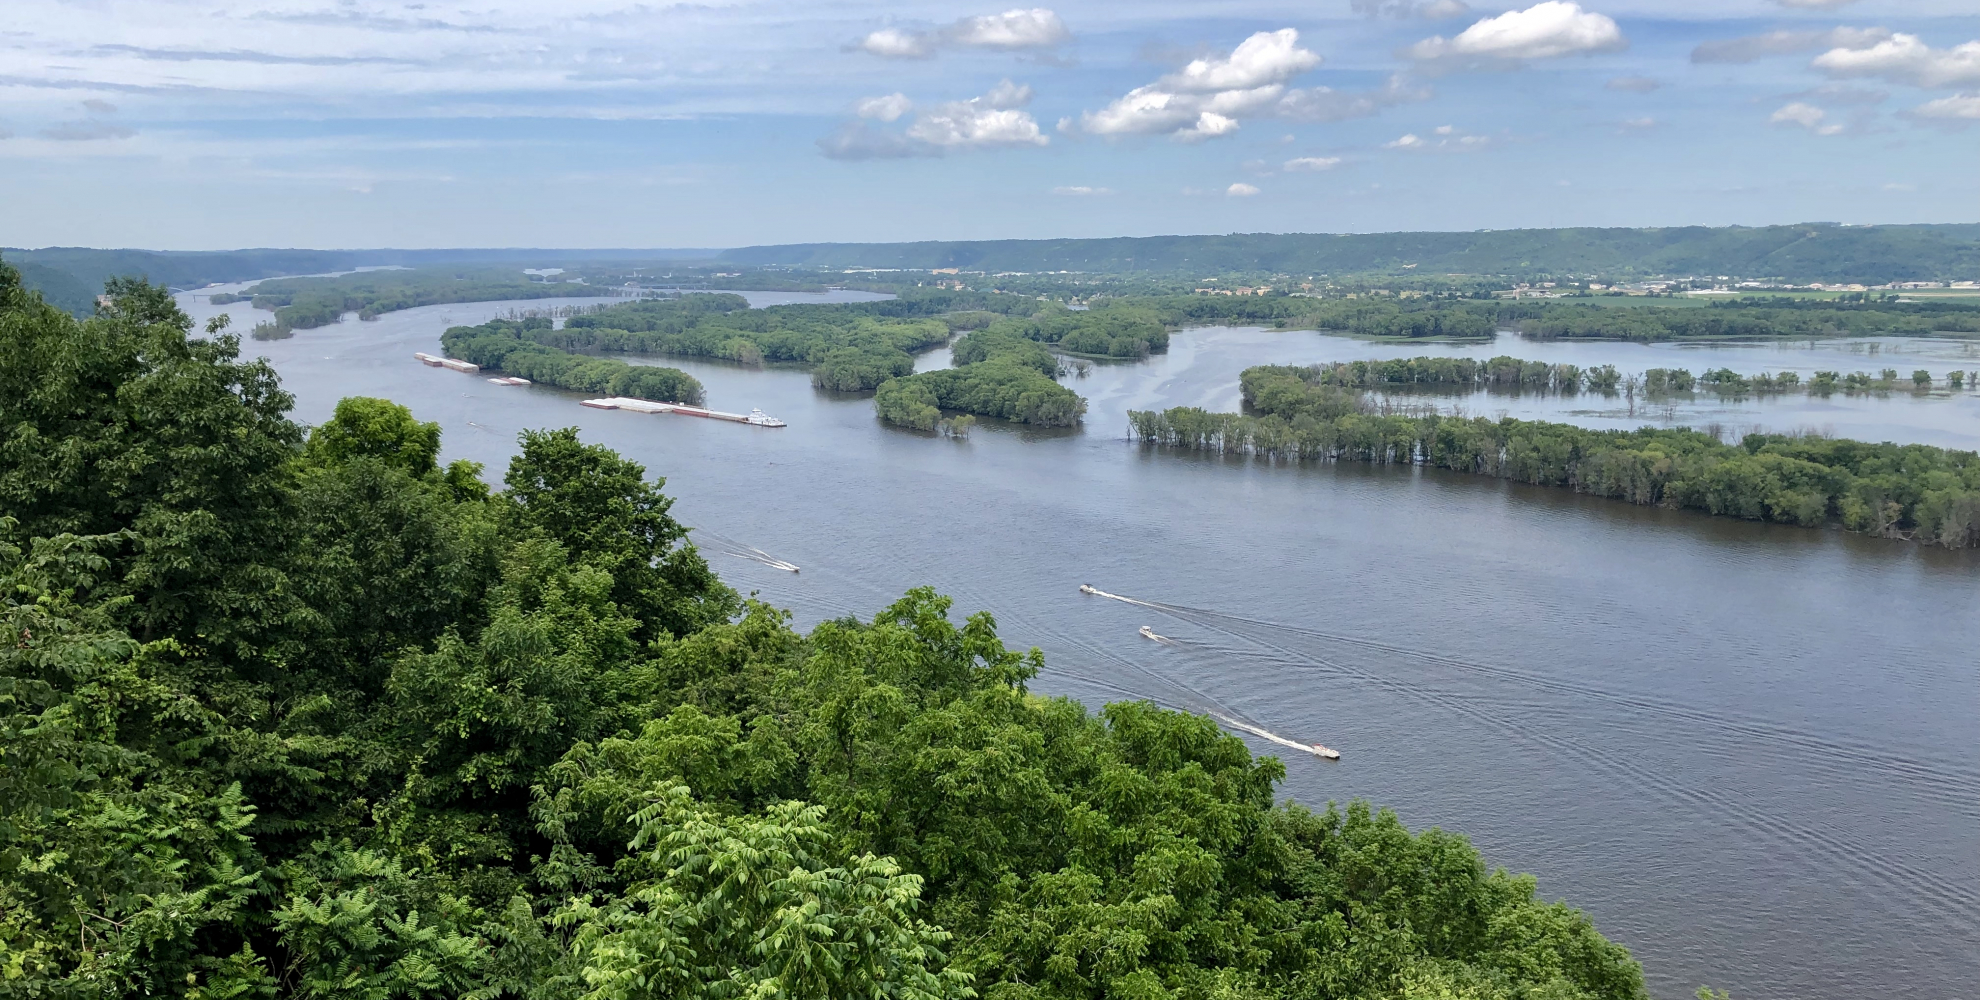 Overlook of the Upper Mississippi River with barge traffic